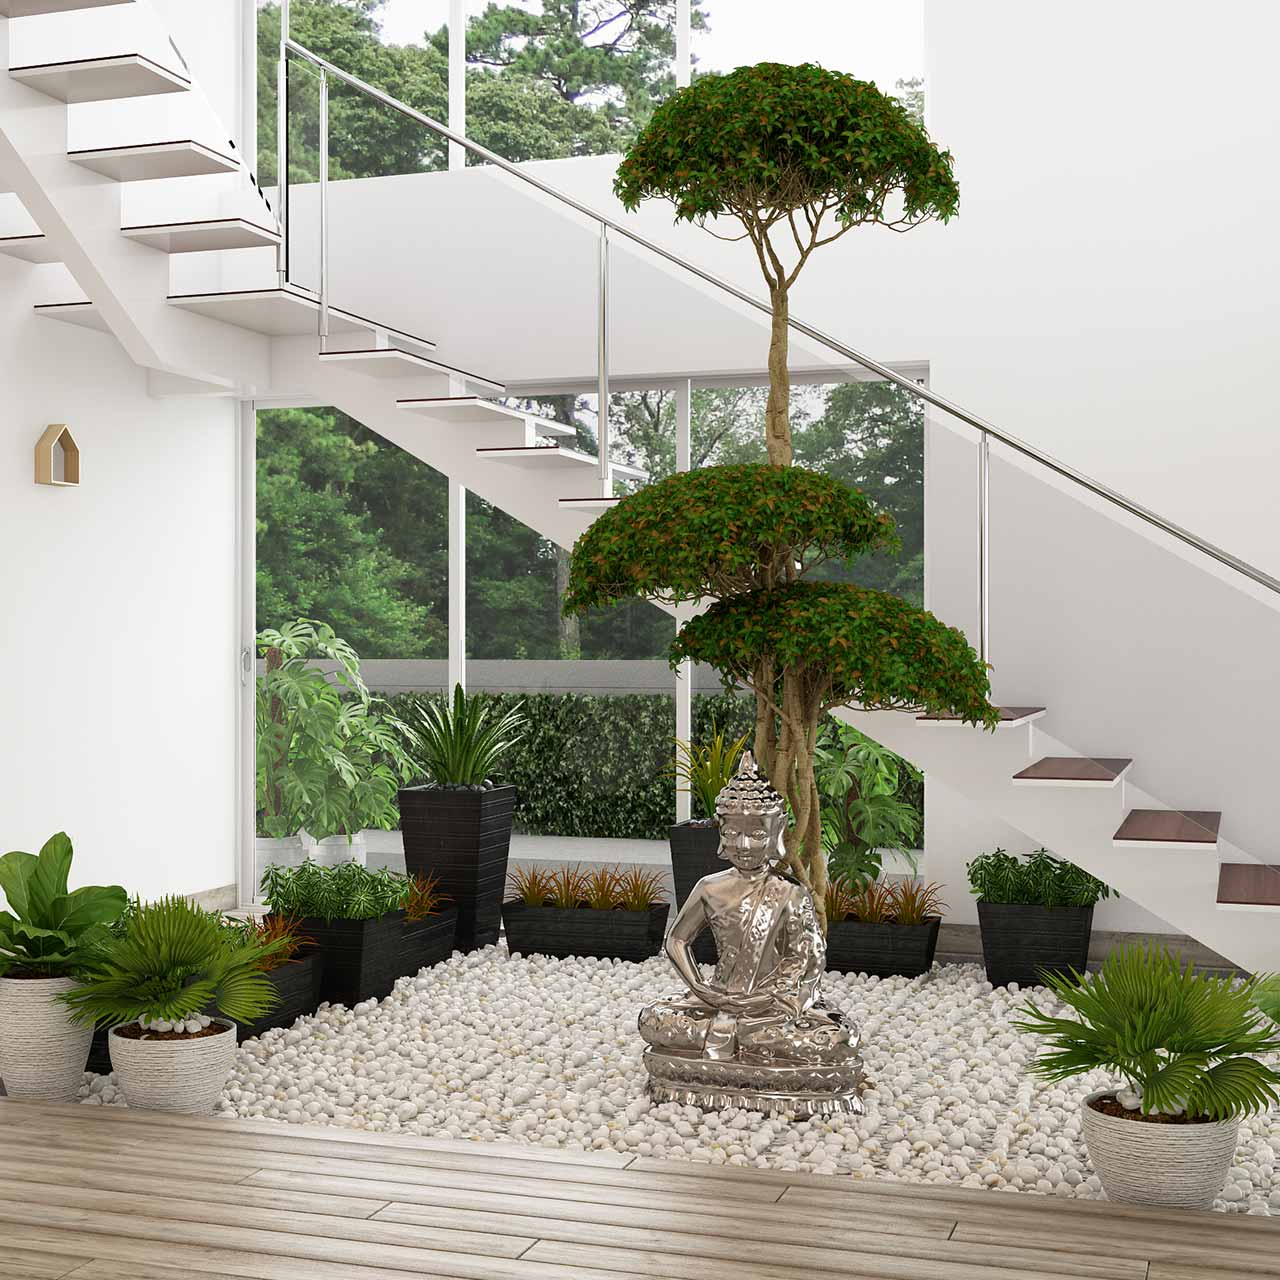 Design your living room interiors with a vibrant natural plants will make your living room lively